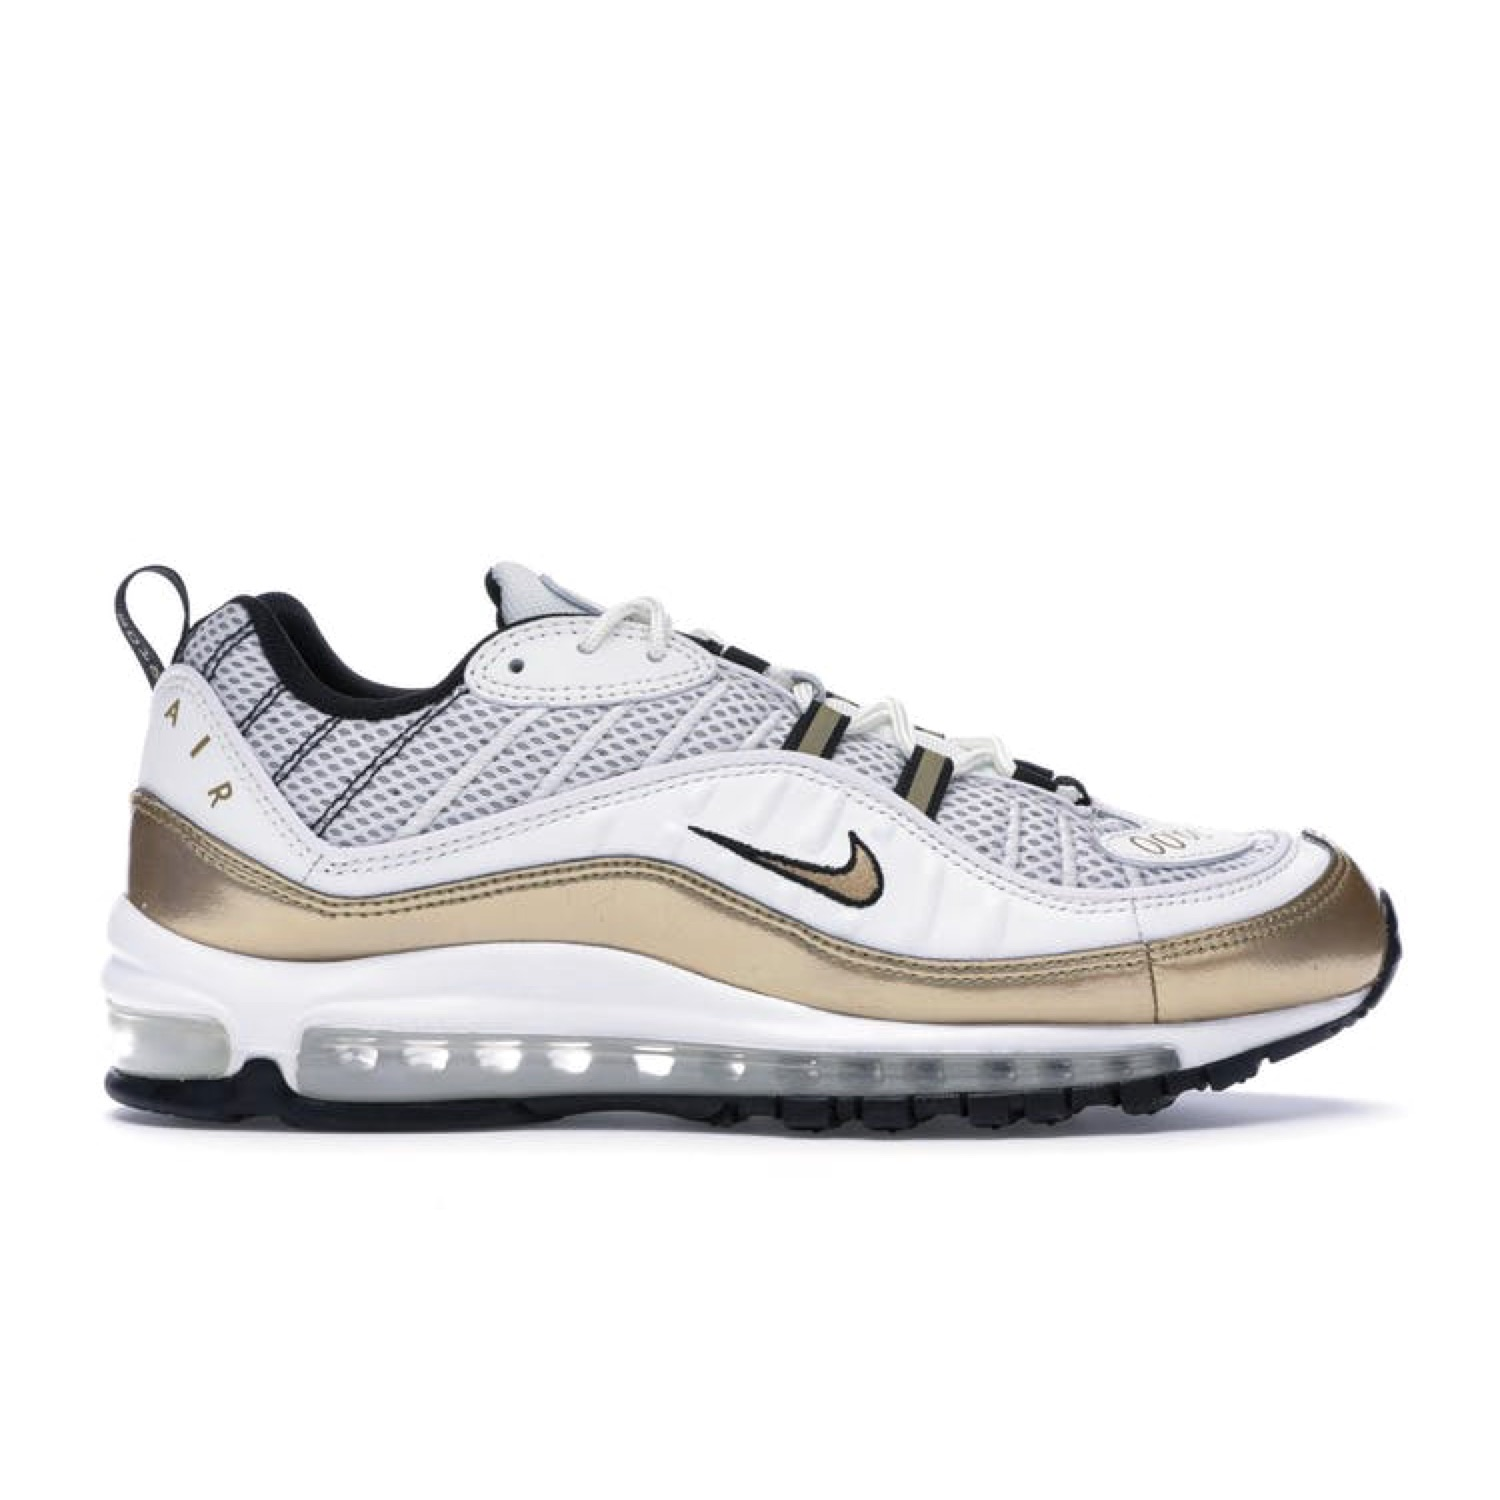 the best attitude 2845f 94cfa 2018 Nike Air Max 98 Hyperlocal Size 9 Men